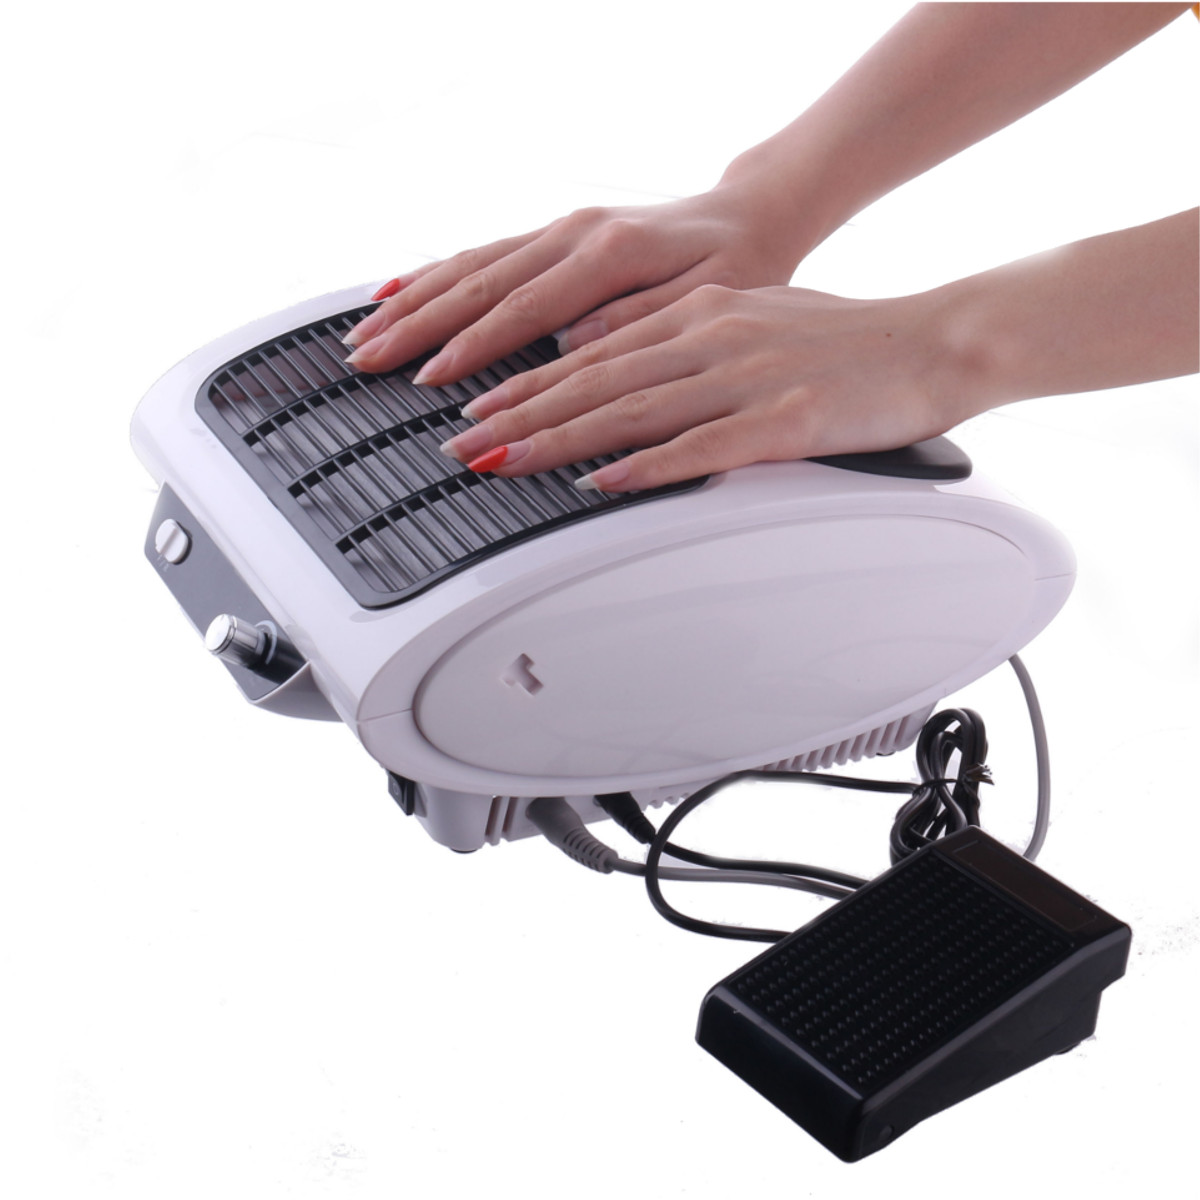 3 In 1 Portable Electric Nail Dust Collector Manicure Drill